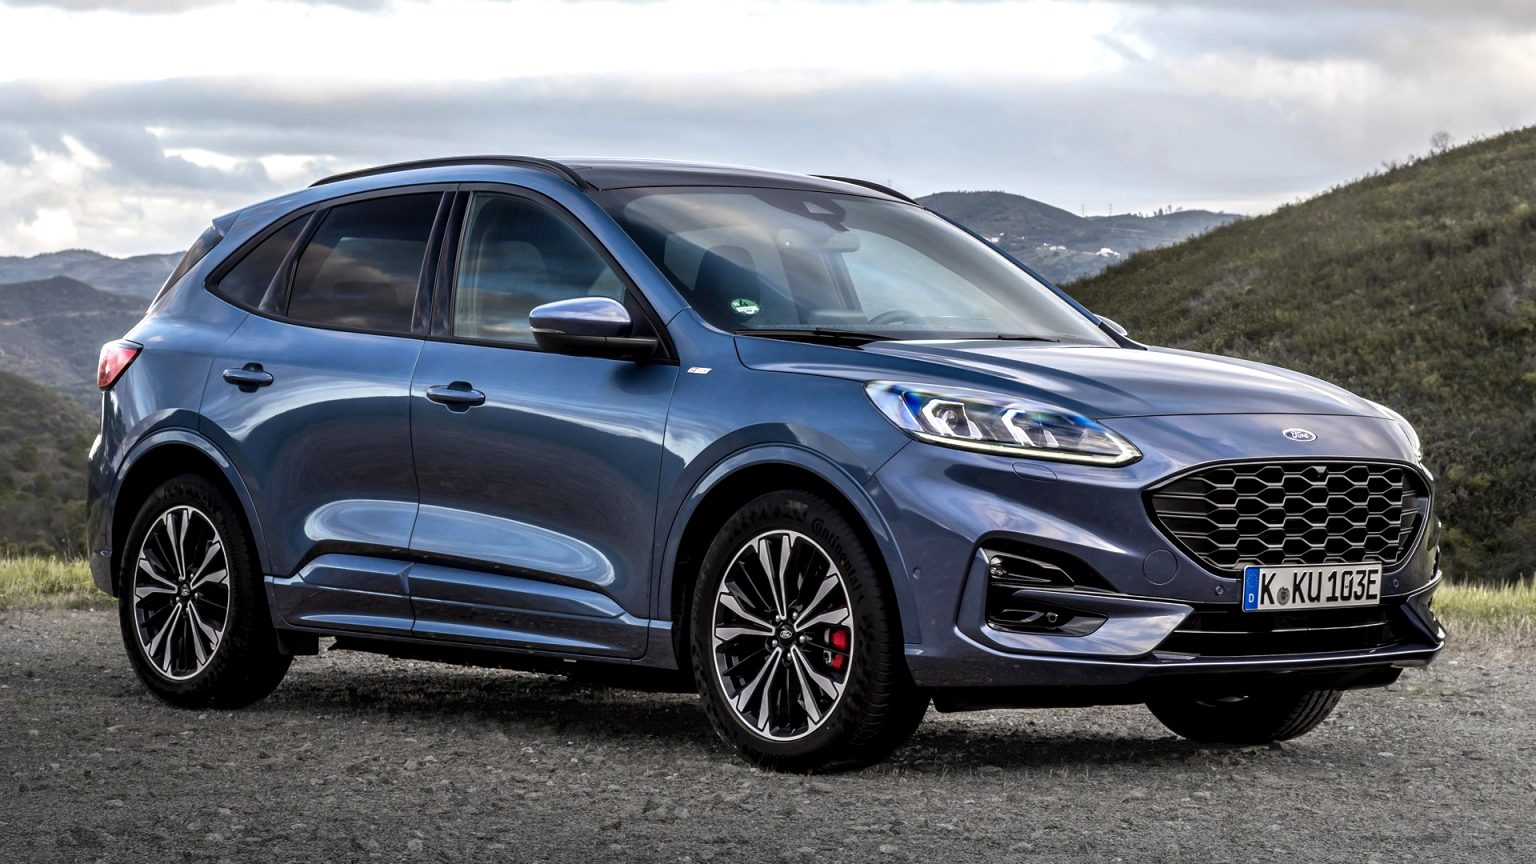 2021 ford kuga st line Price and Review